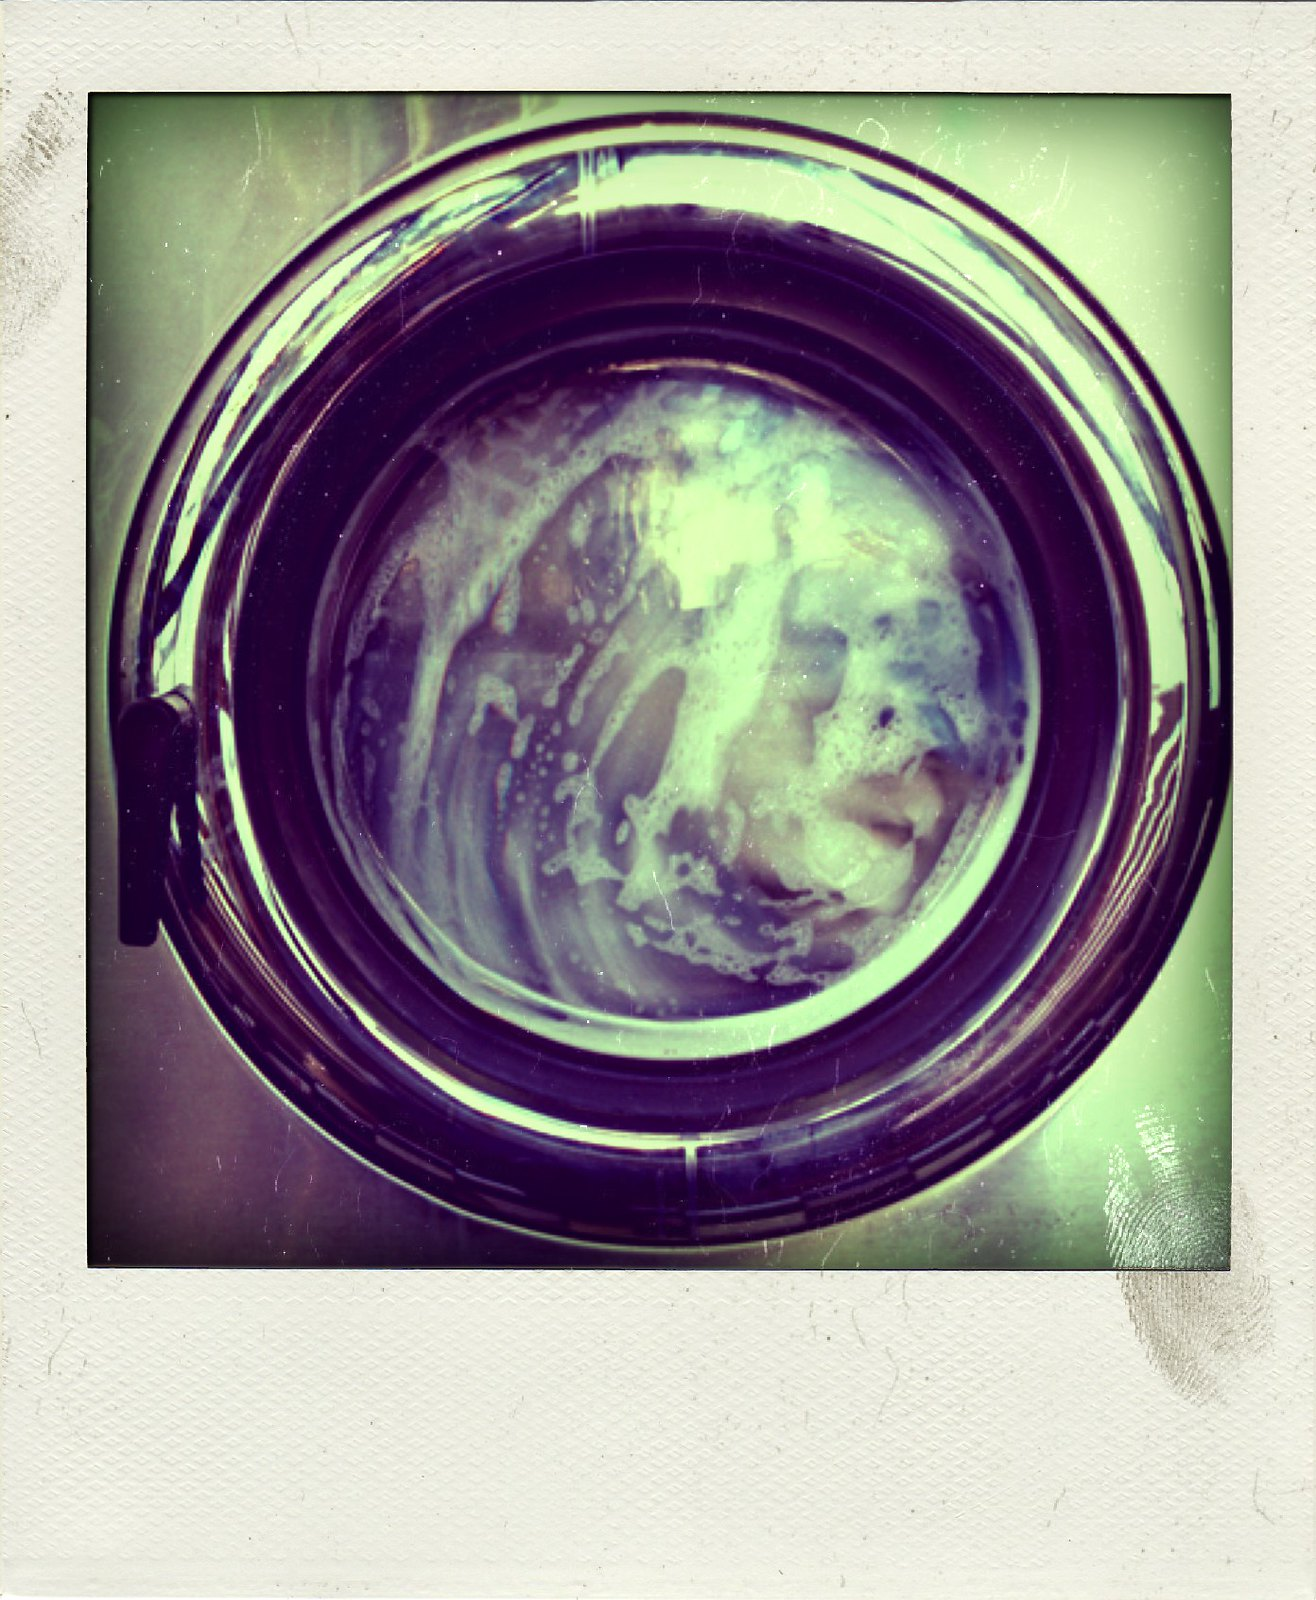 Photo of a washing machine in use.